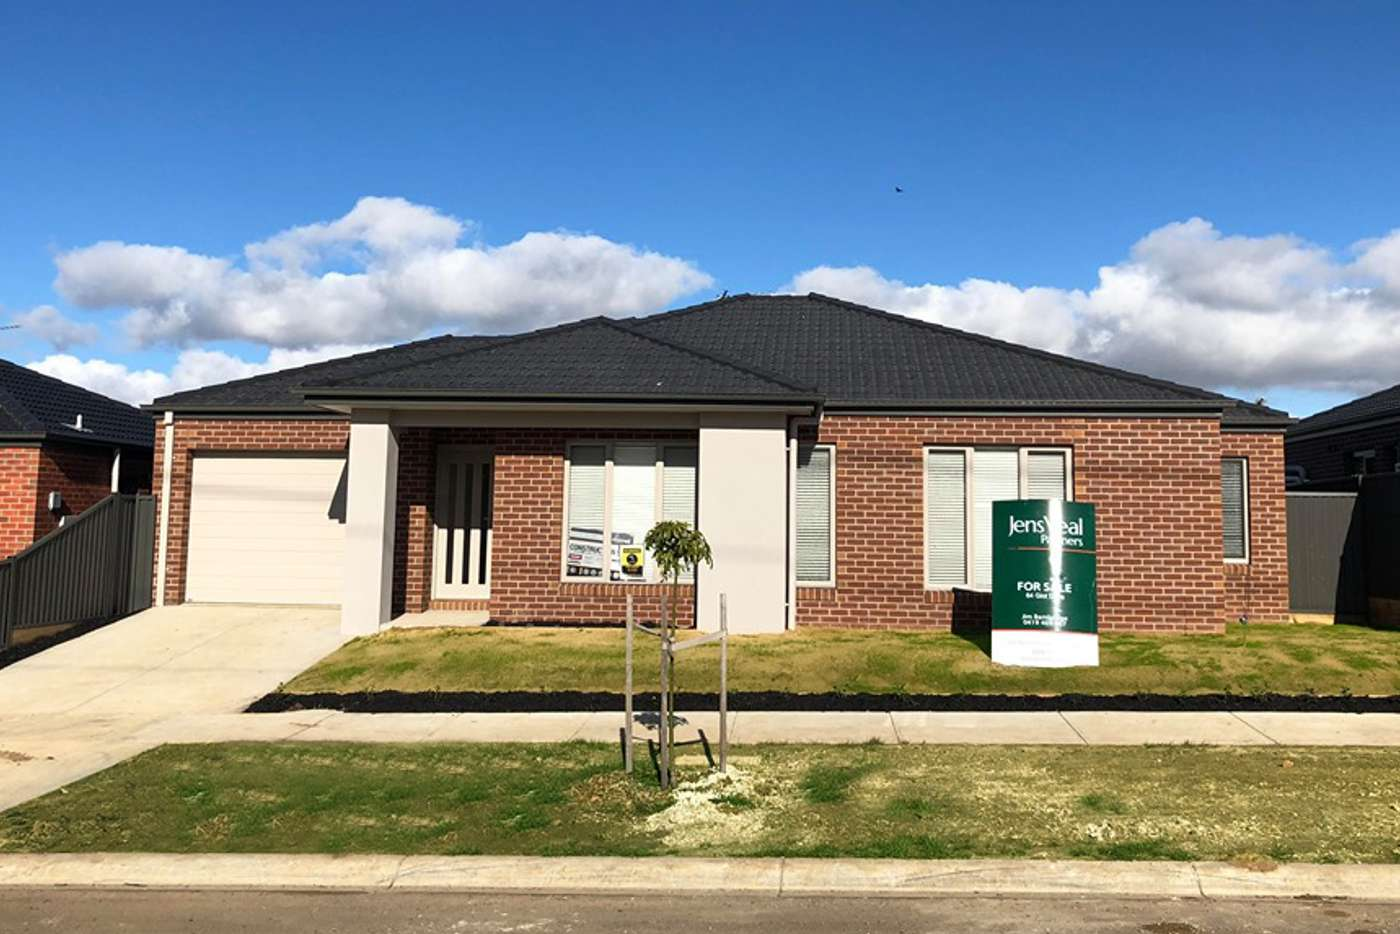 Main view of Homely house listing, 64 Giot Drive, Wendouree VIC 3355